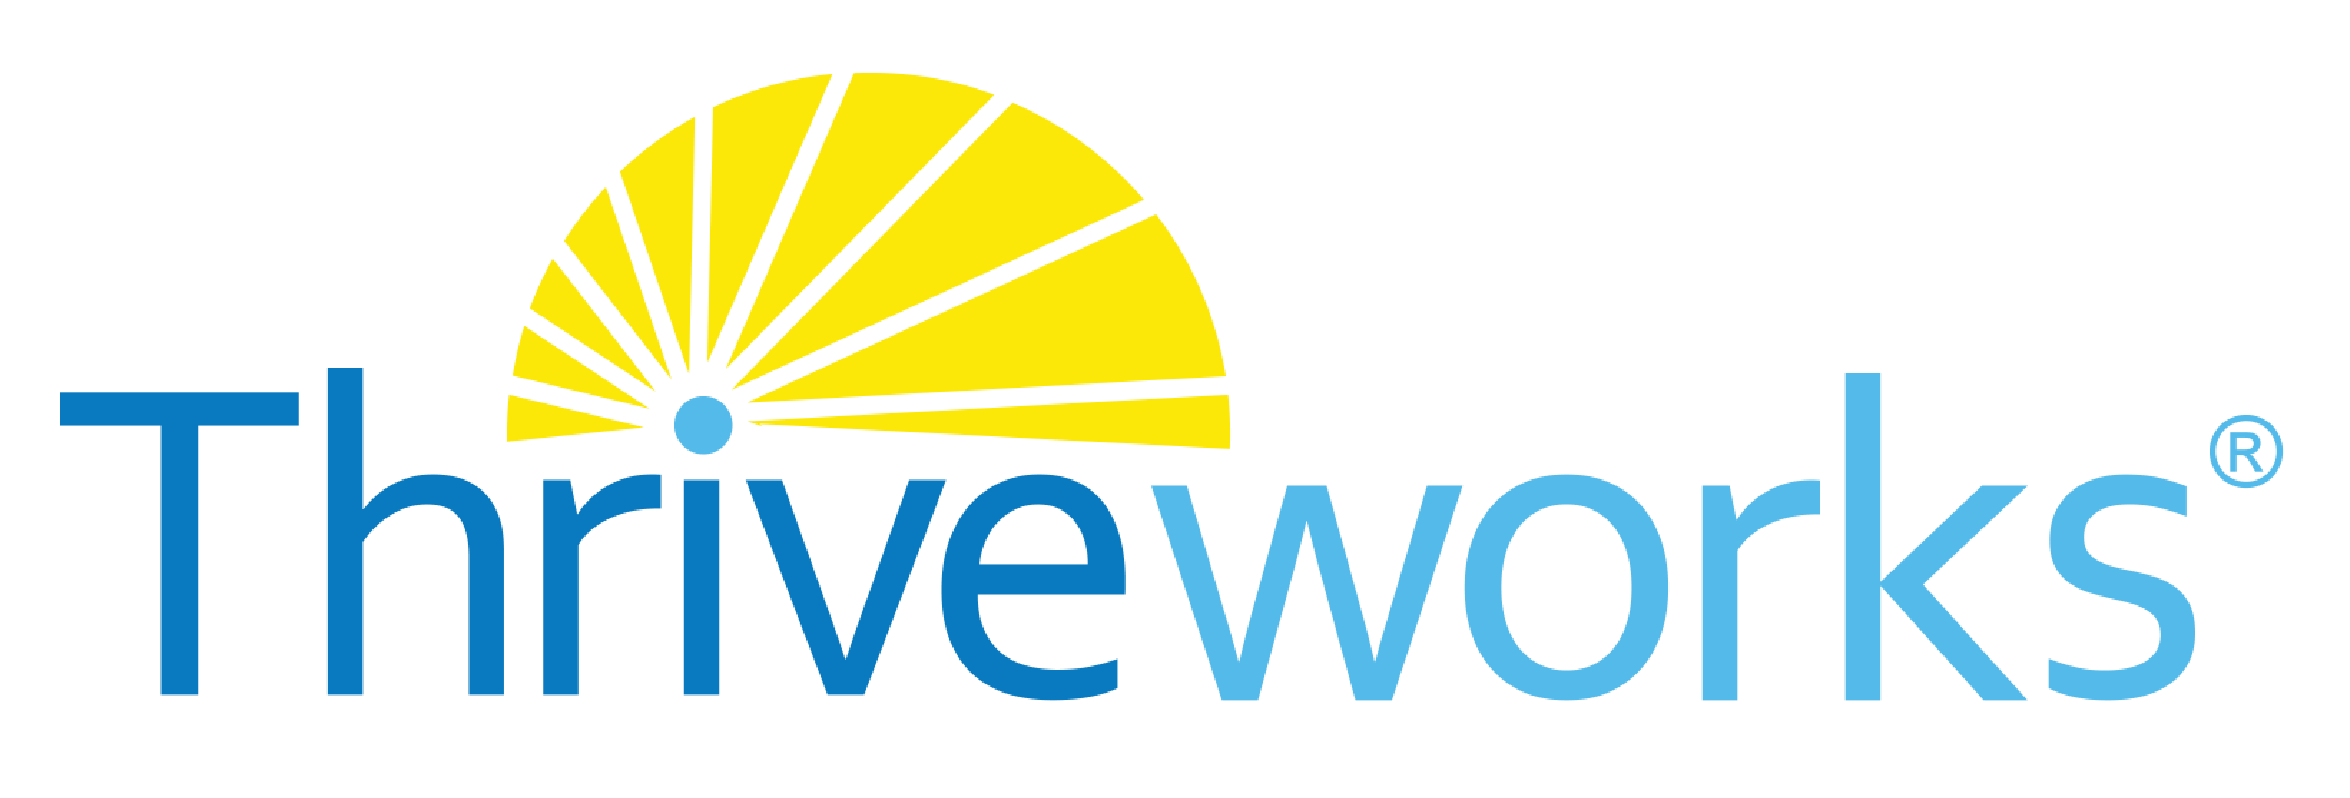 thriveworks-png